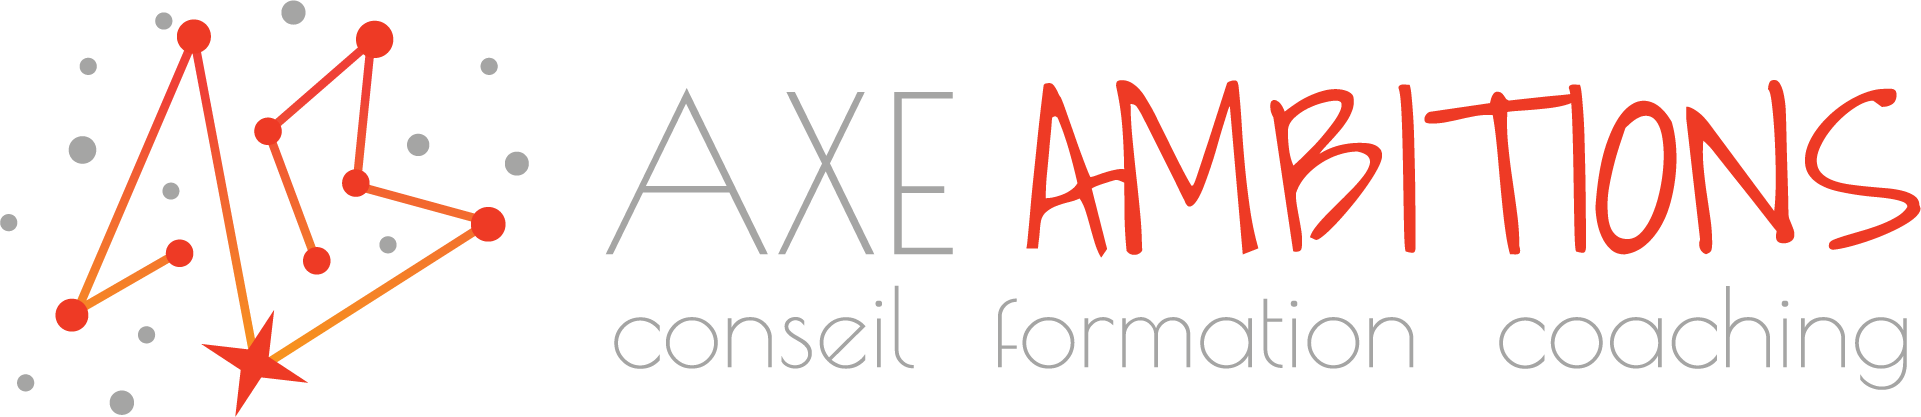 logo-axeambitions-coaching transition professionnelle bilan de compétences pontcharra isere